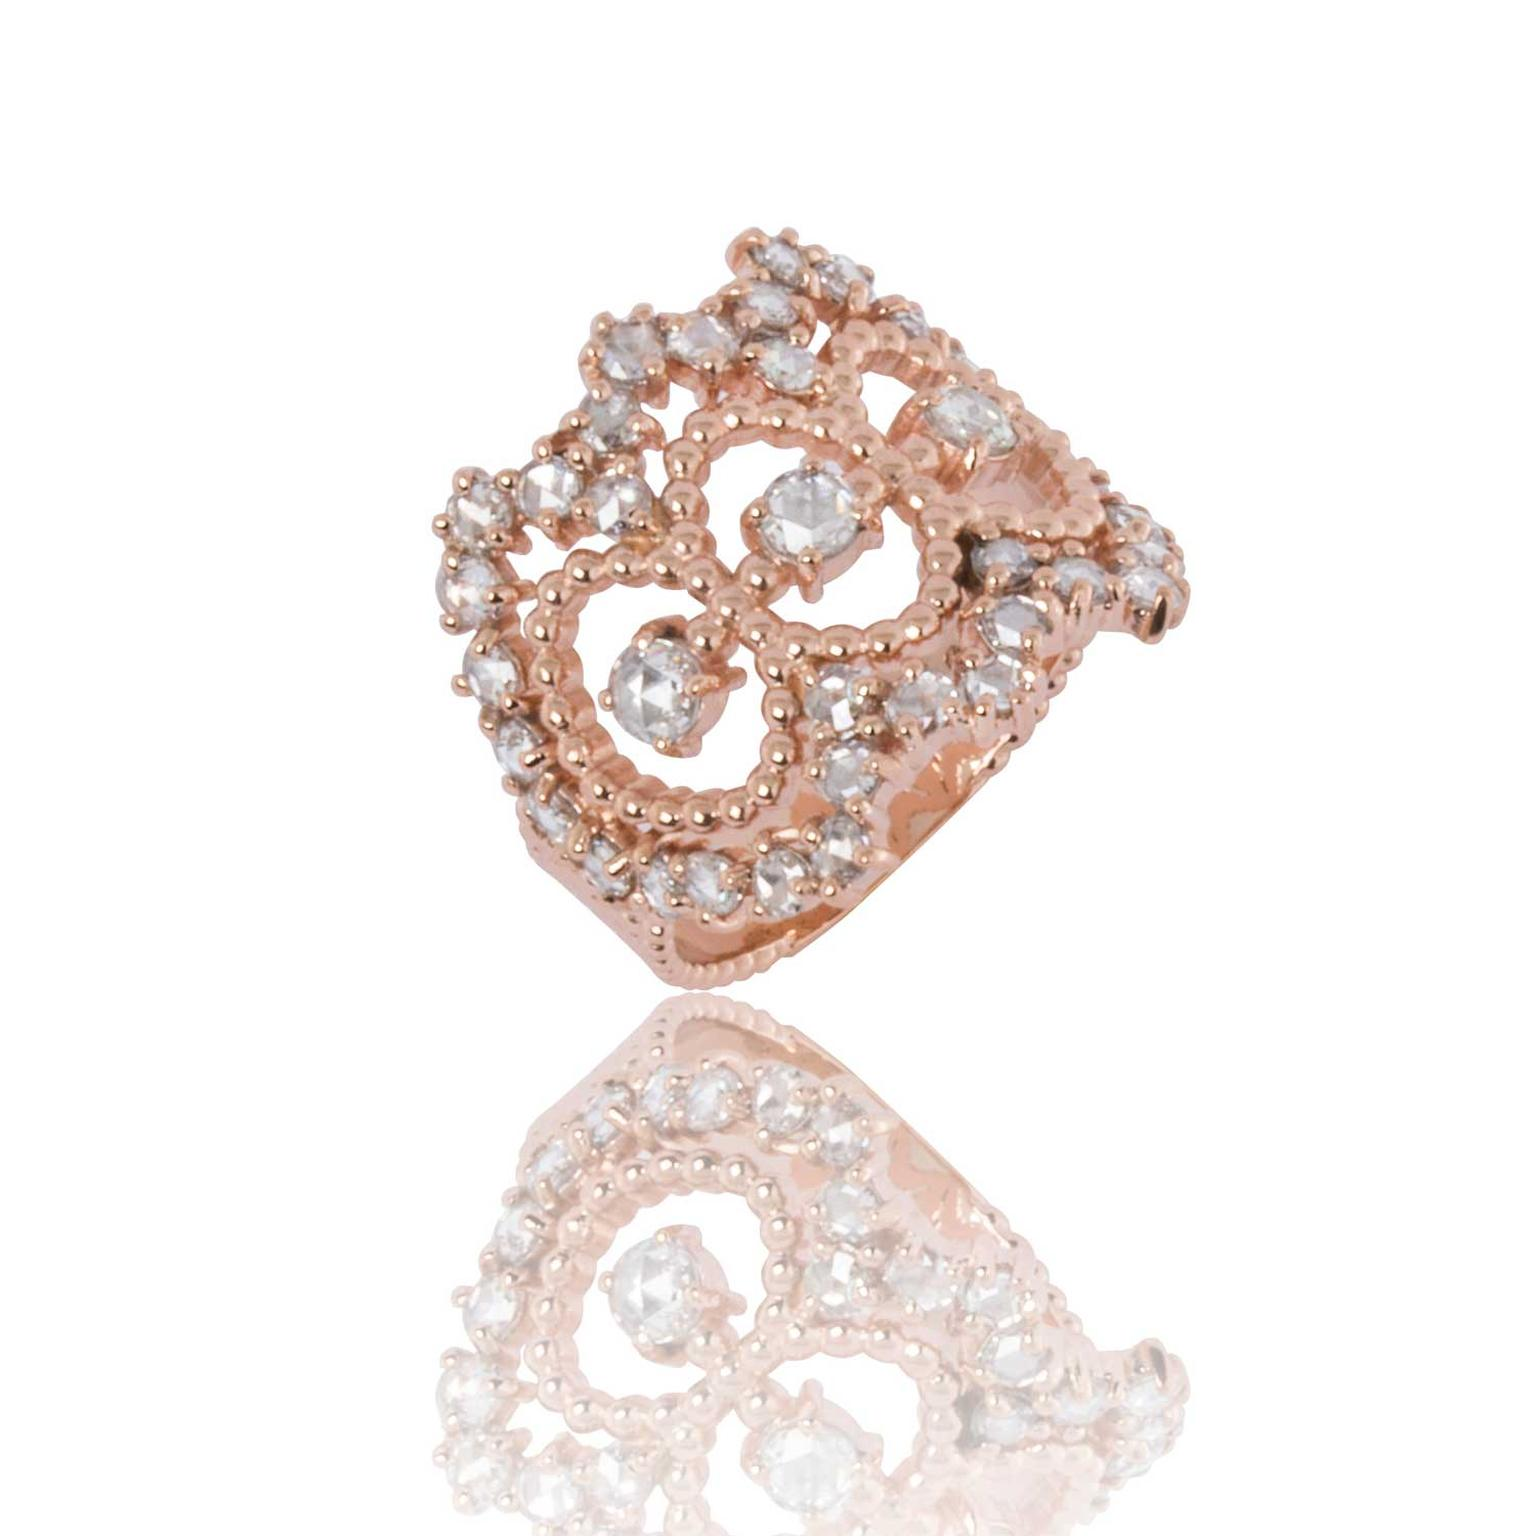 Carla Amorim Enchanted ring in pink gold with diamonds